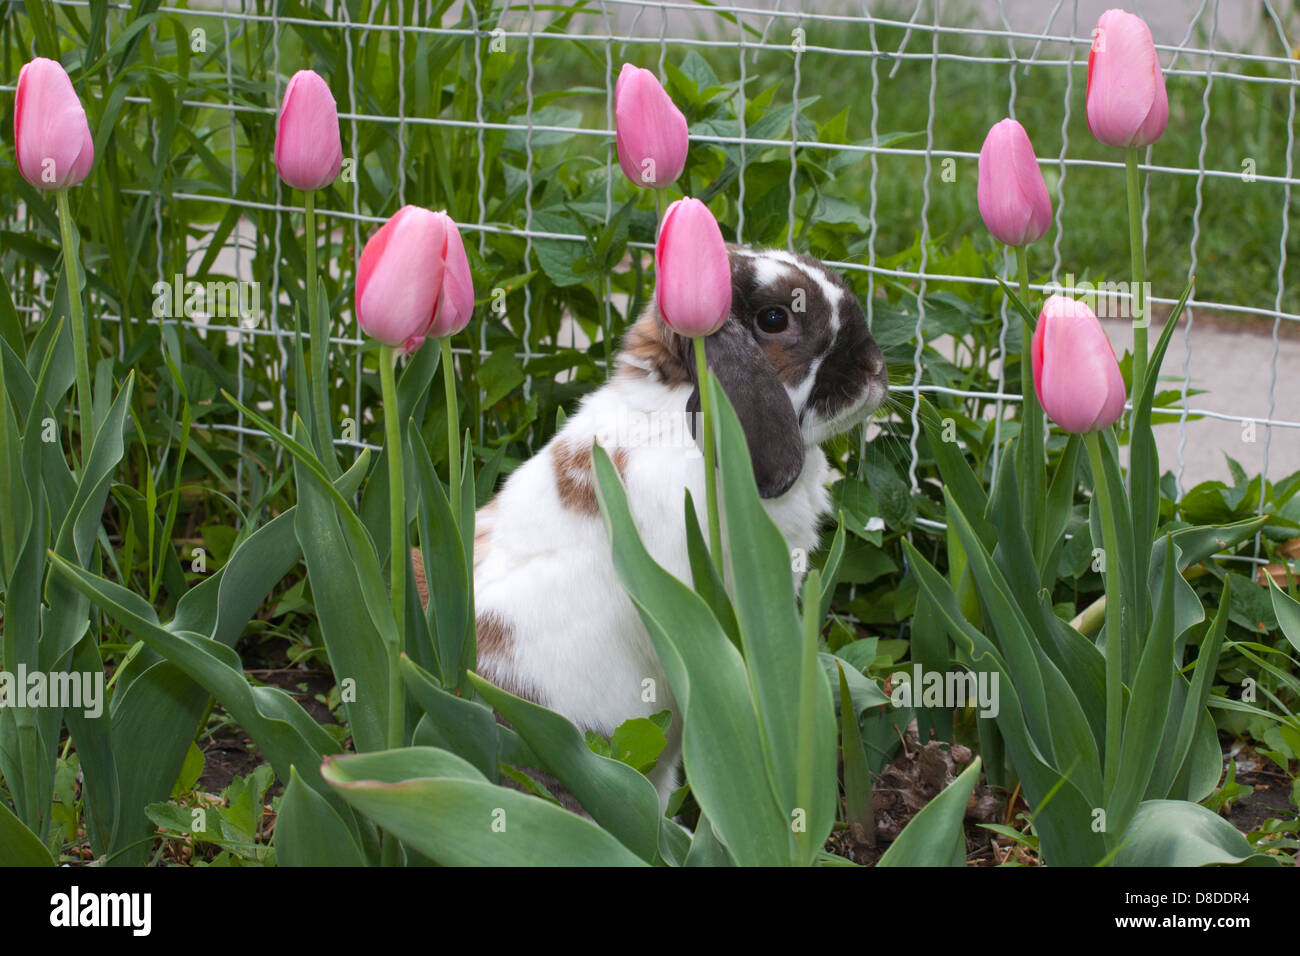 Holland Lop pet rabbit among the tulips in garden - Stock Image